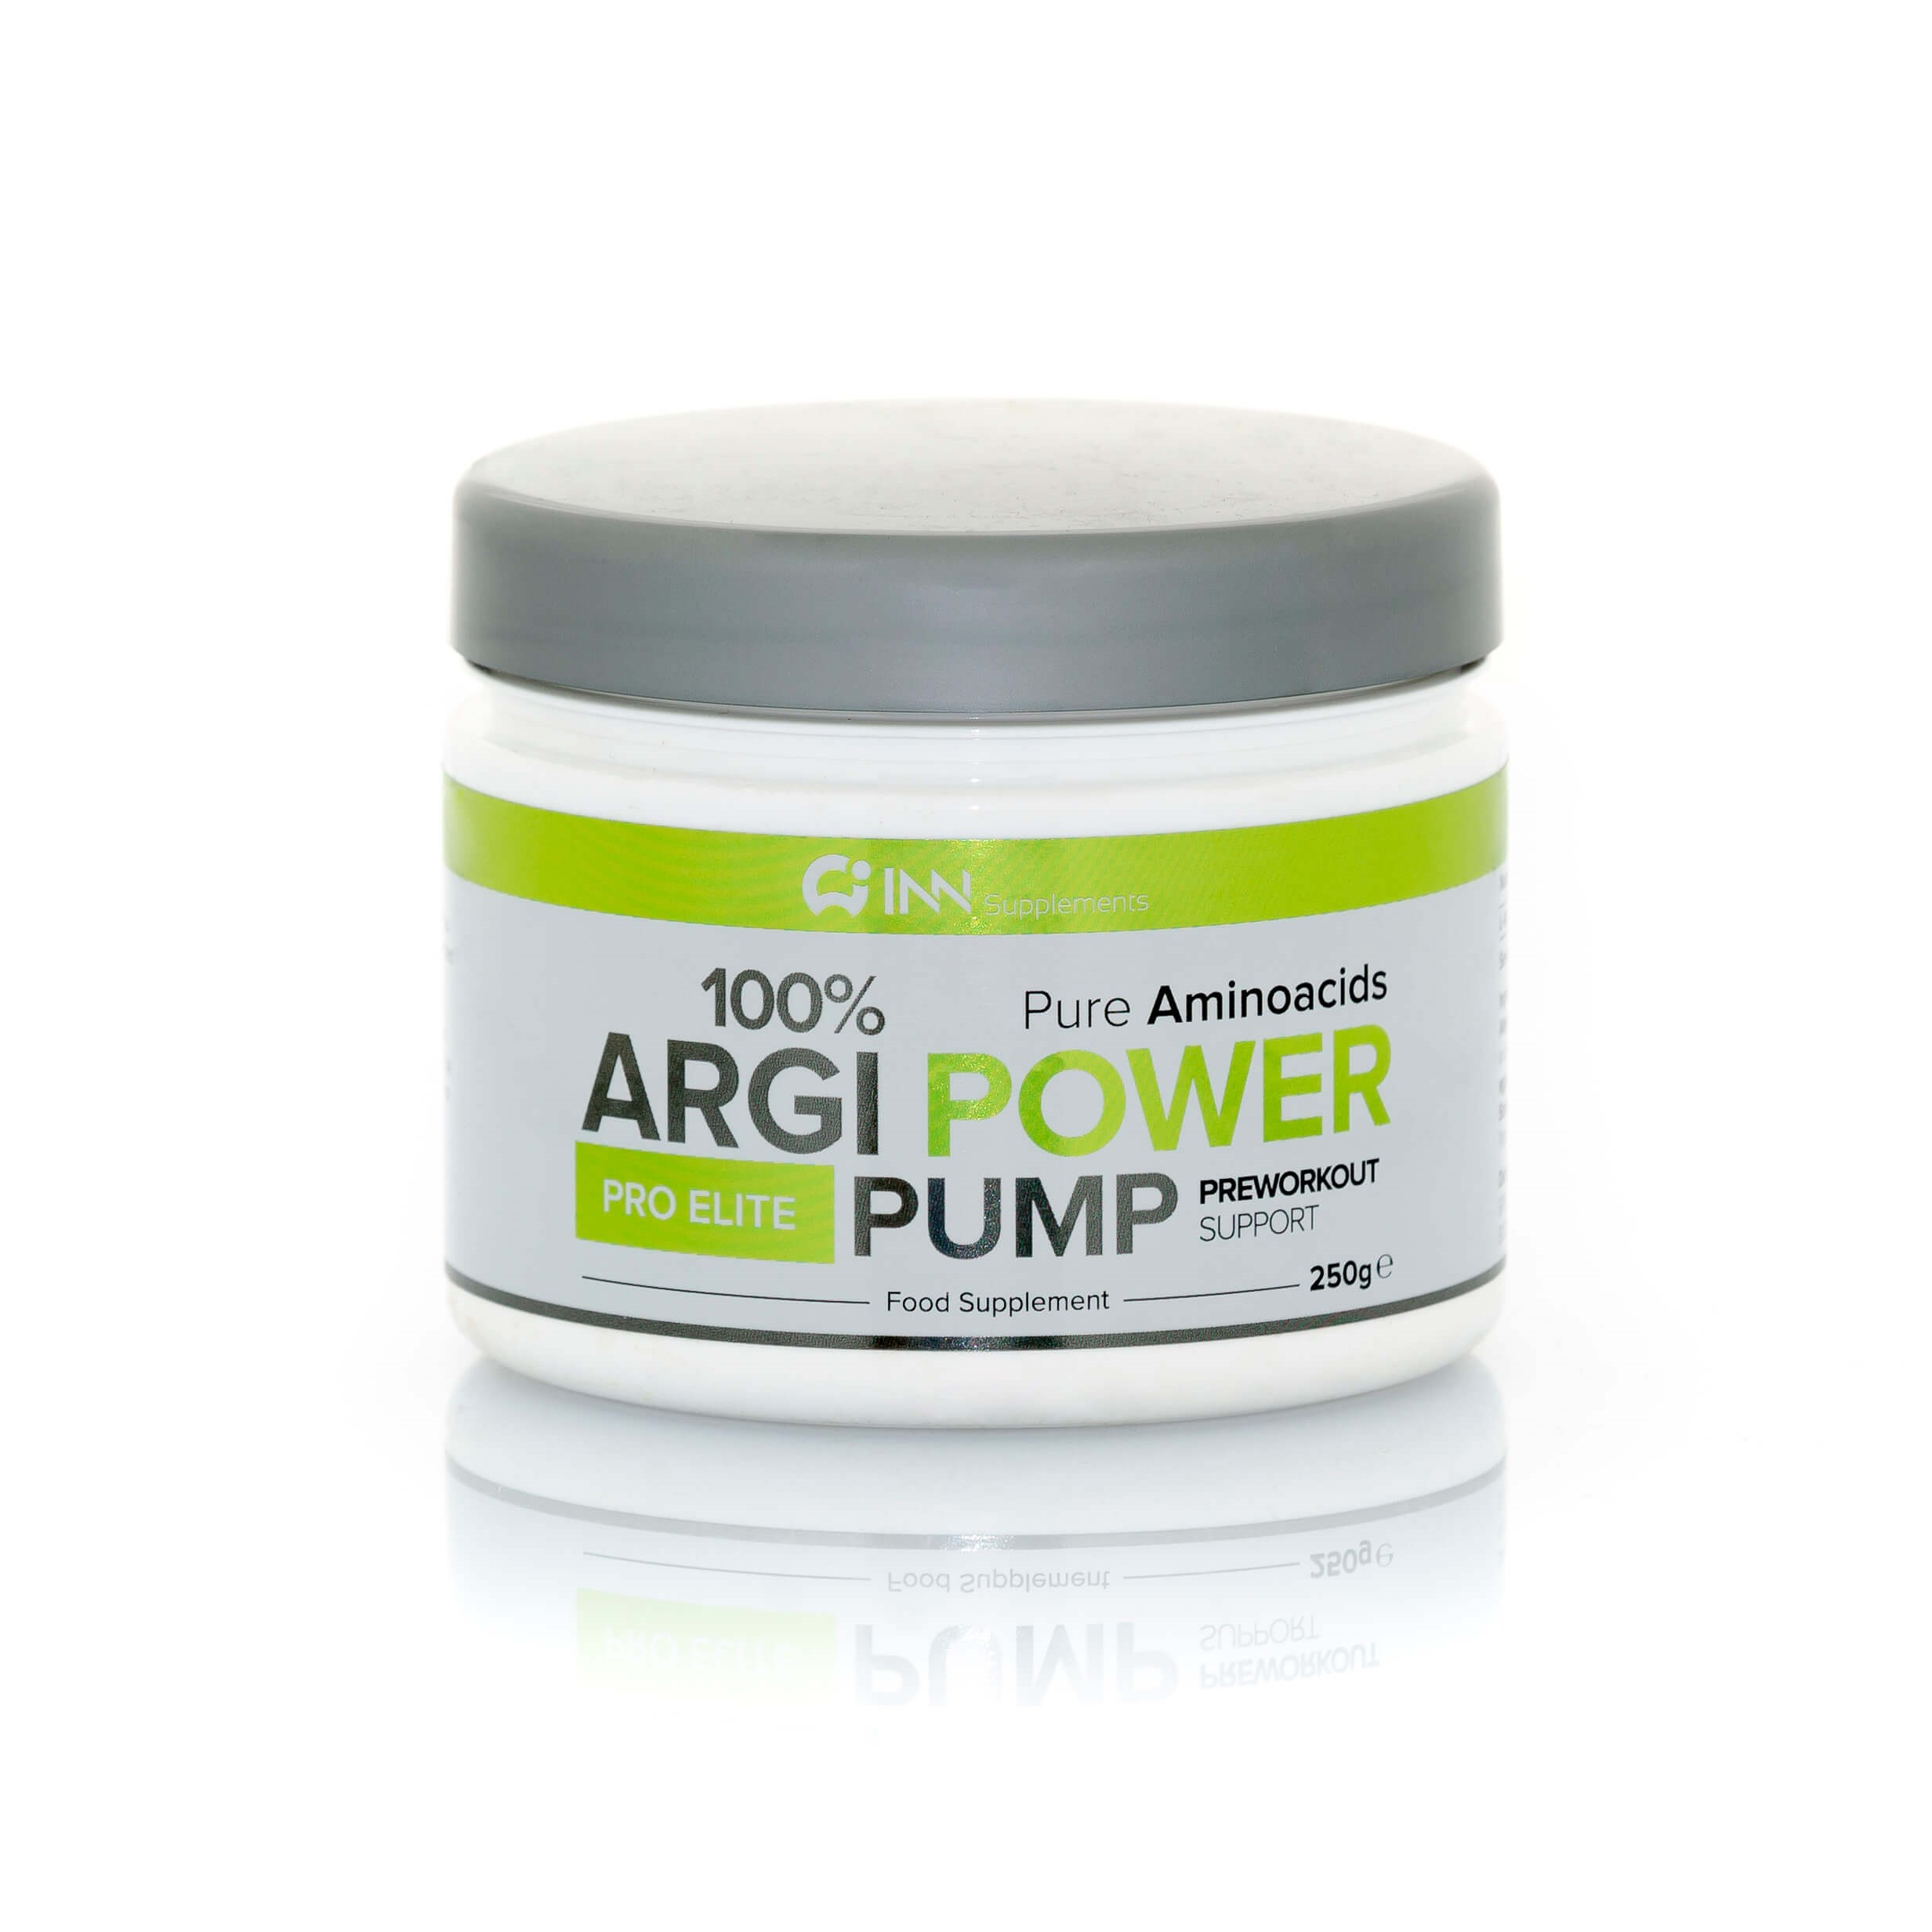 INN 100% argiPOWER Pump 250g